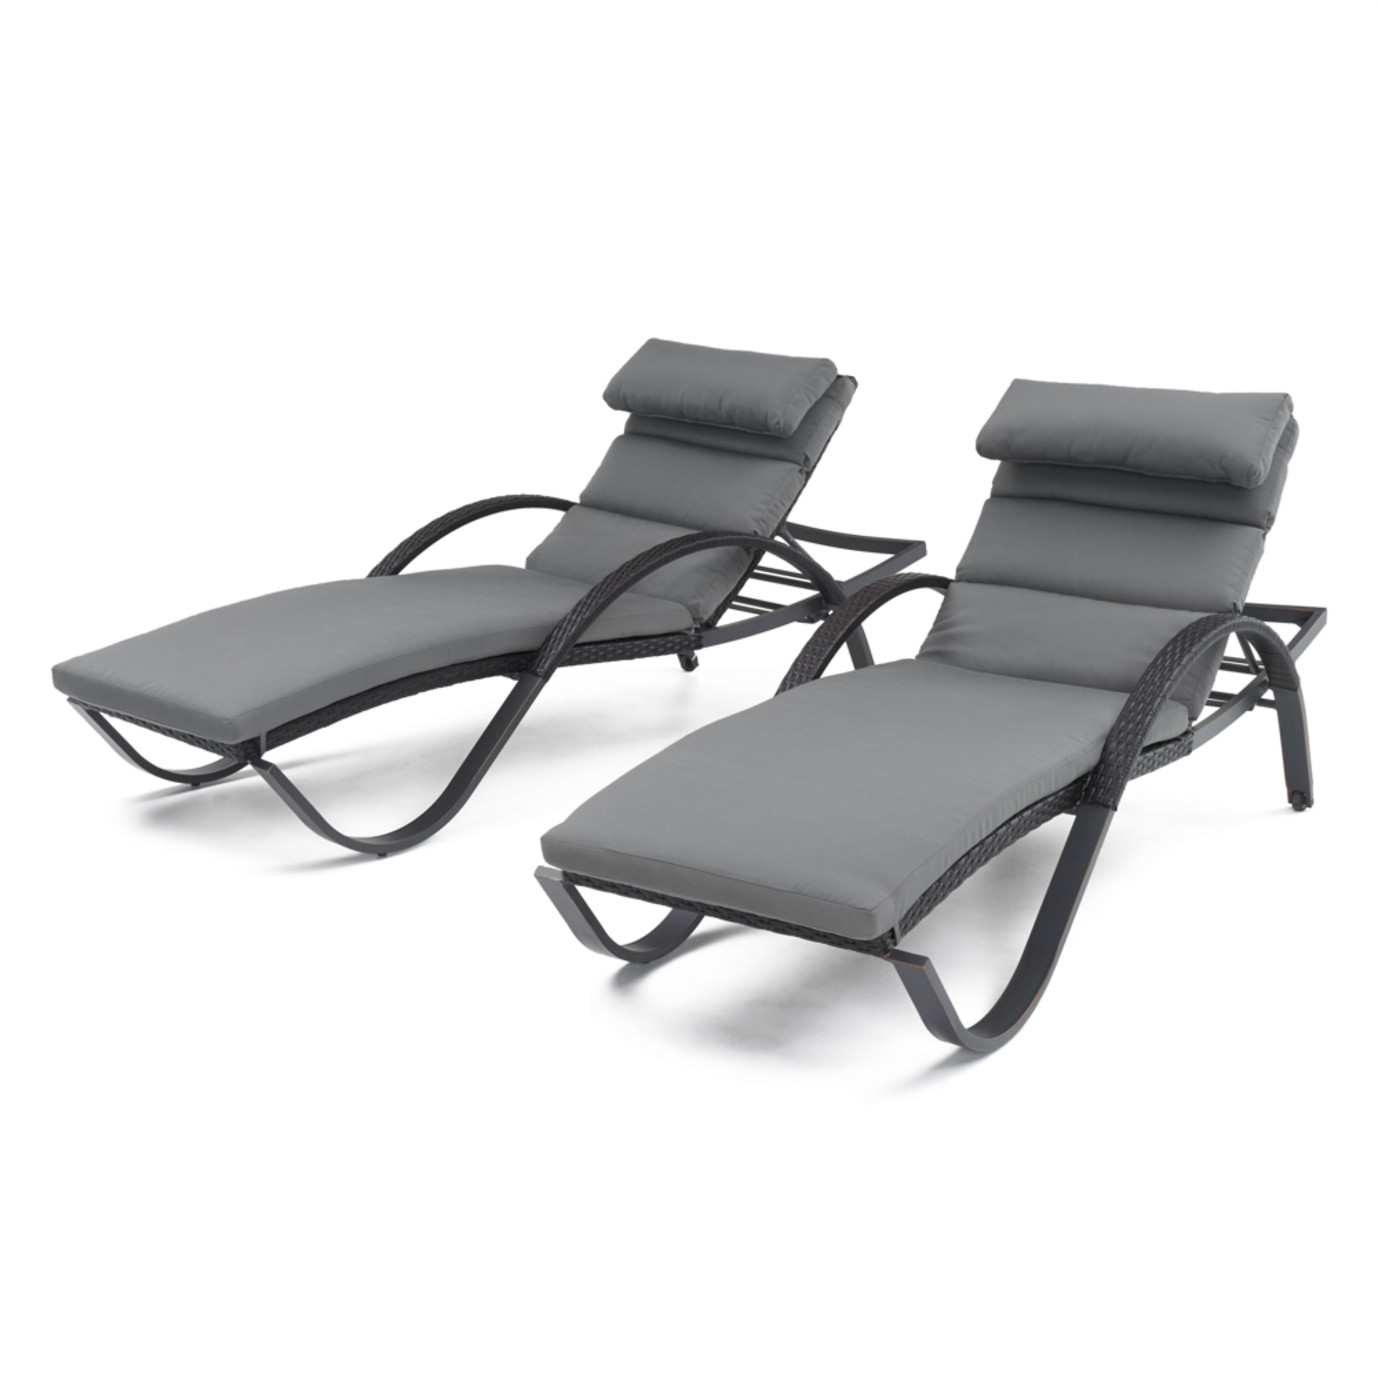 Deco™ Chaise Lounges with Cushions - Charcoal Grey